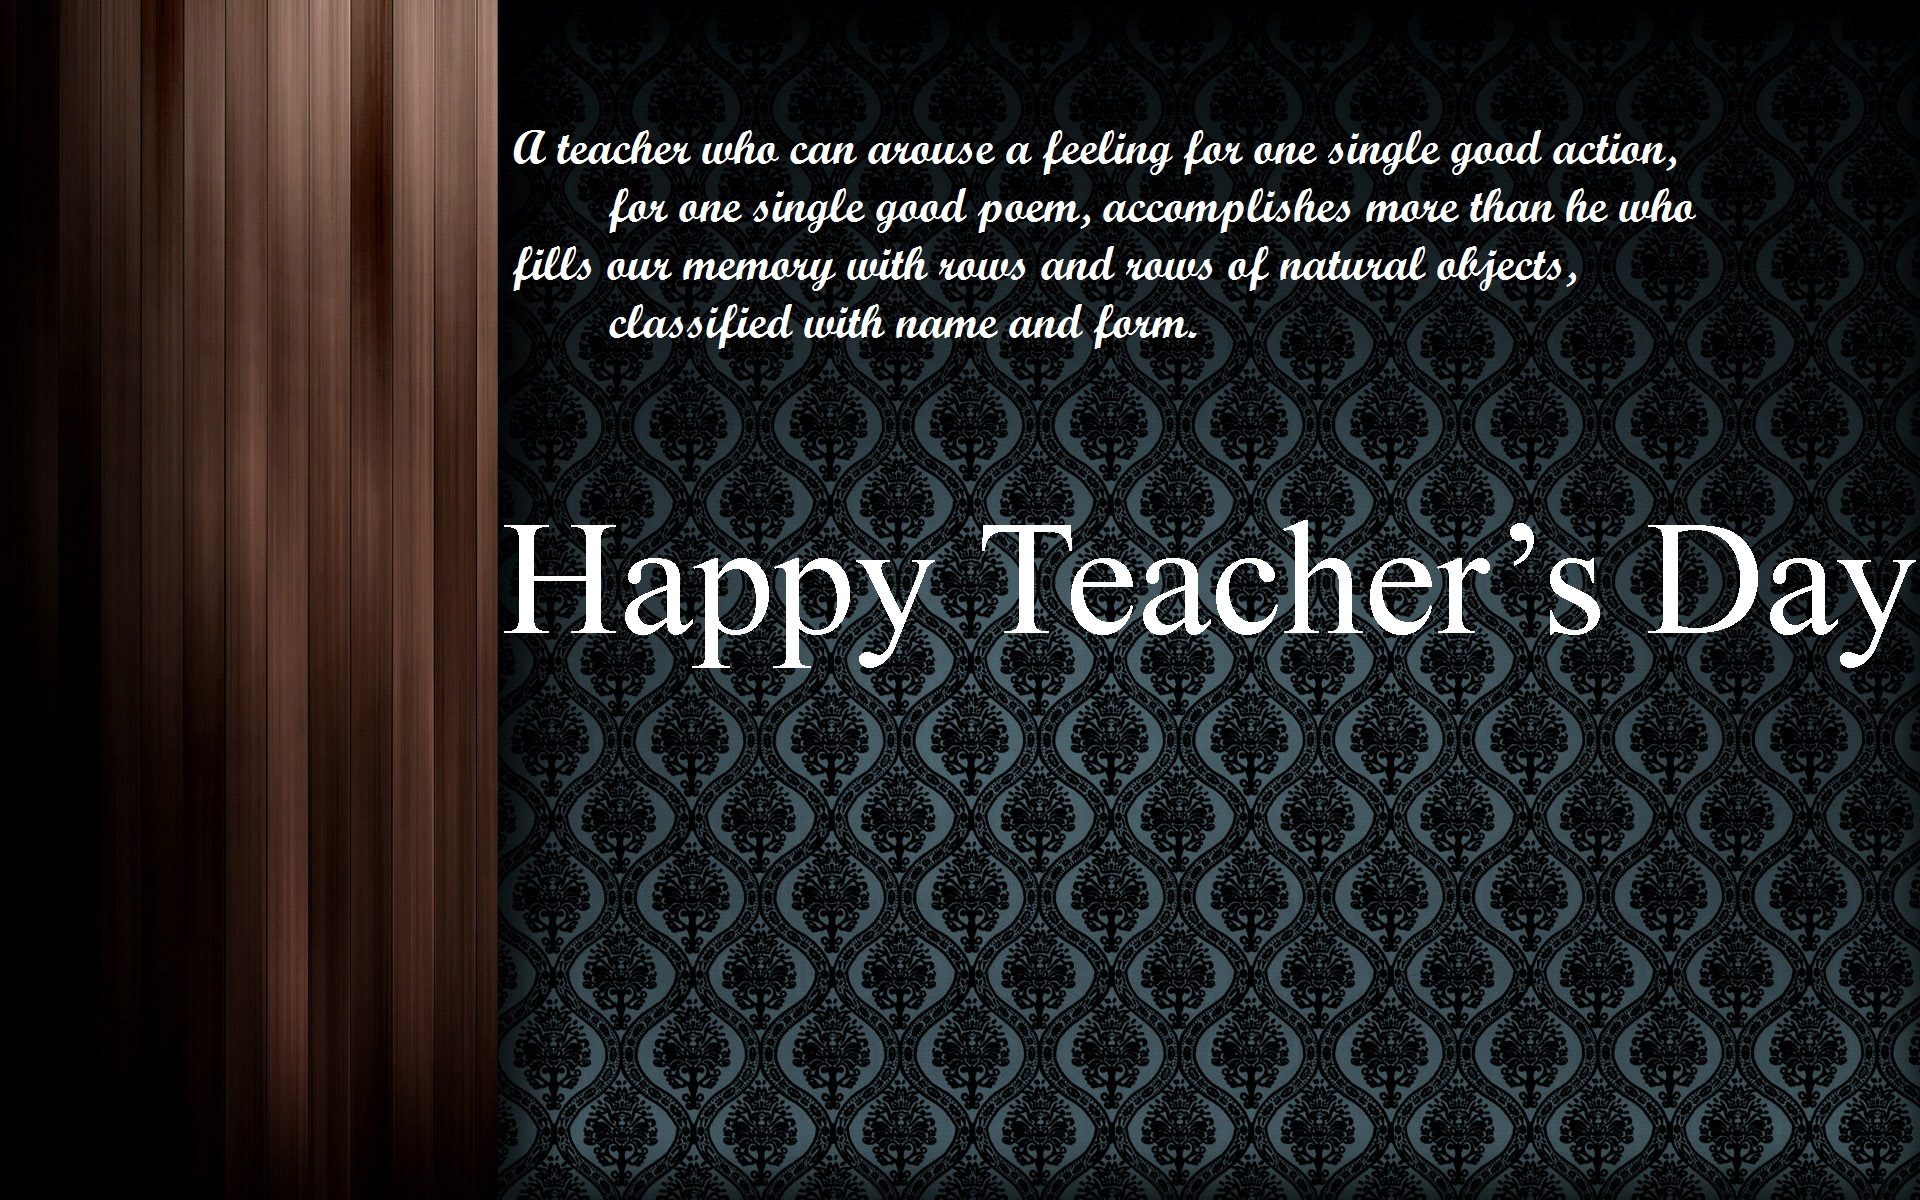 Happy Teachers Day HD Images Wallpapers Pics and Photos 1920x1200